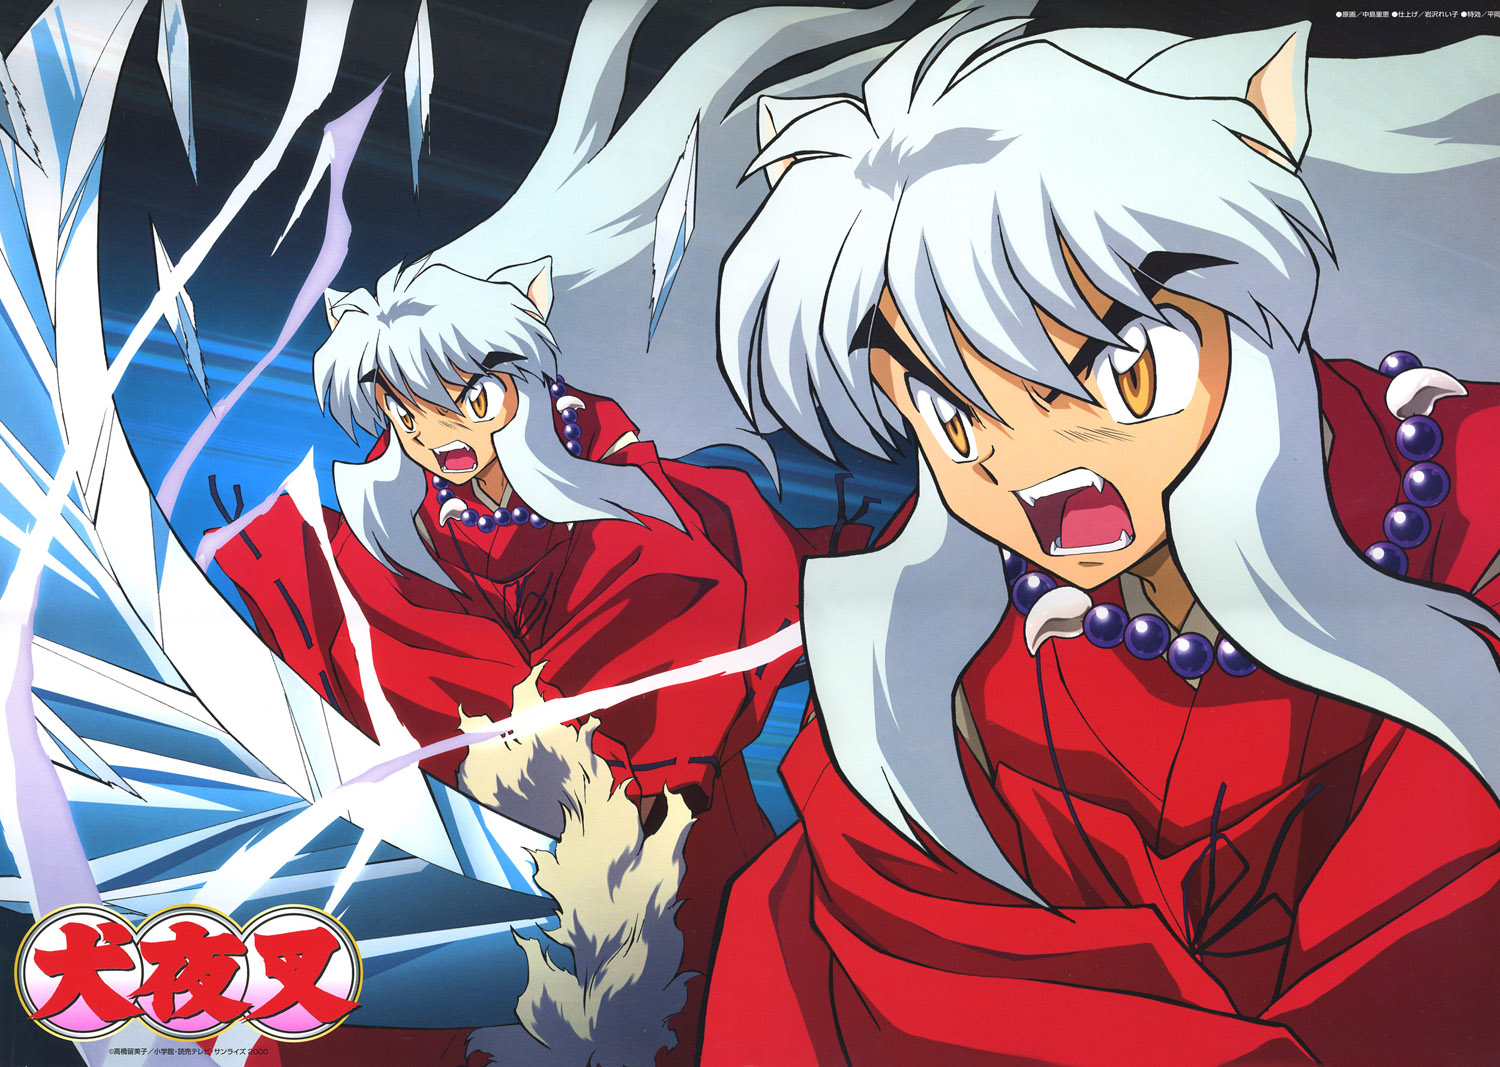 escorpiece el rey de las series: Inuyasha